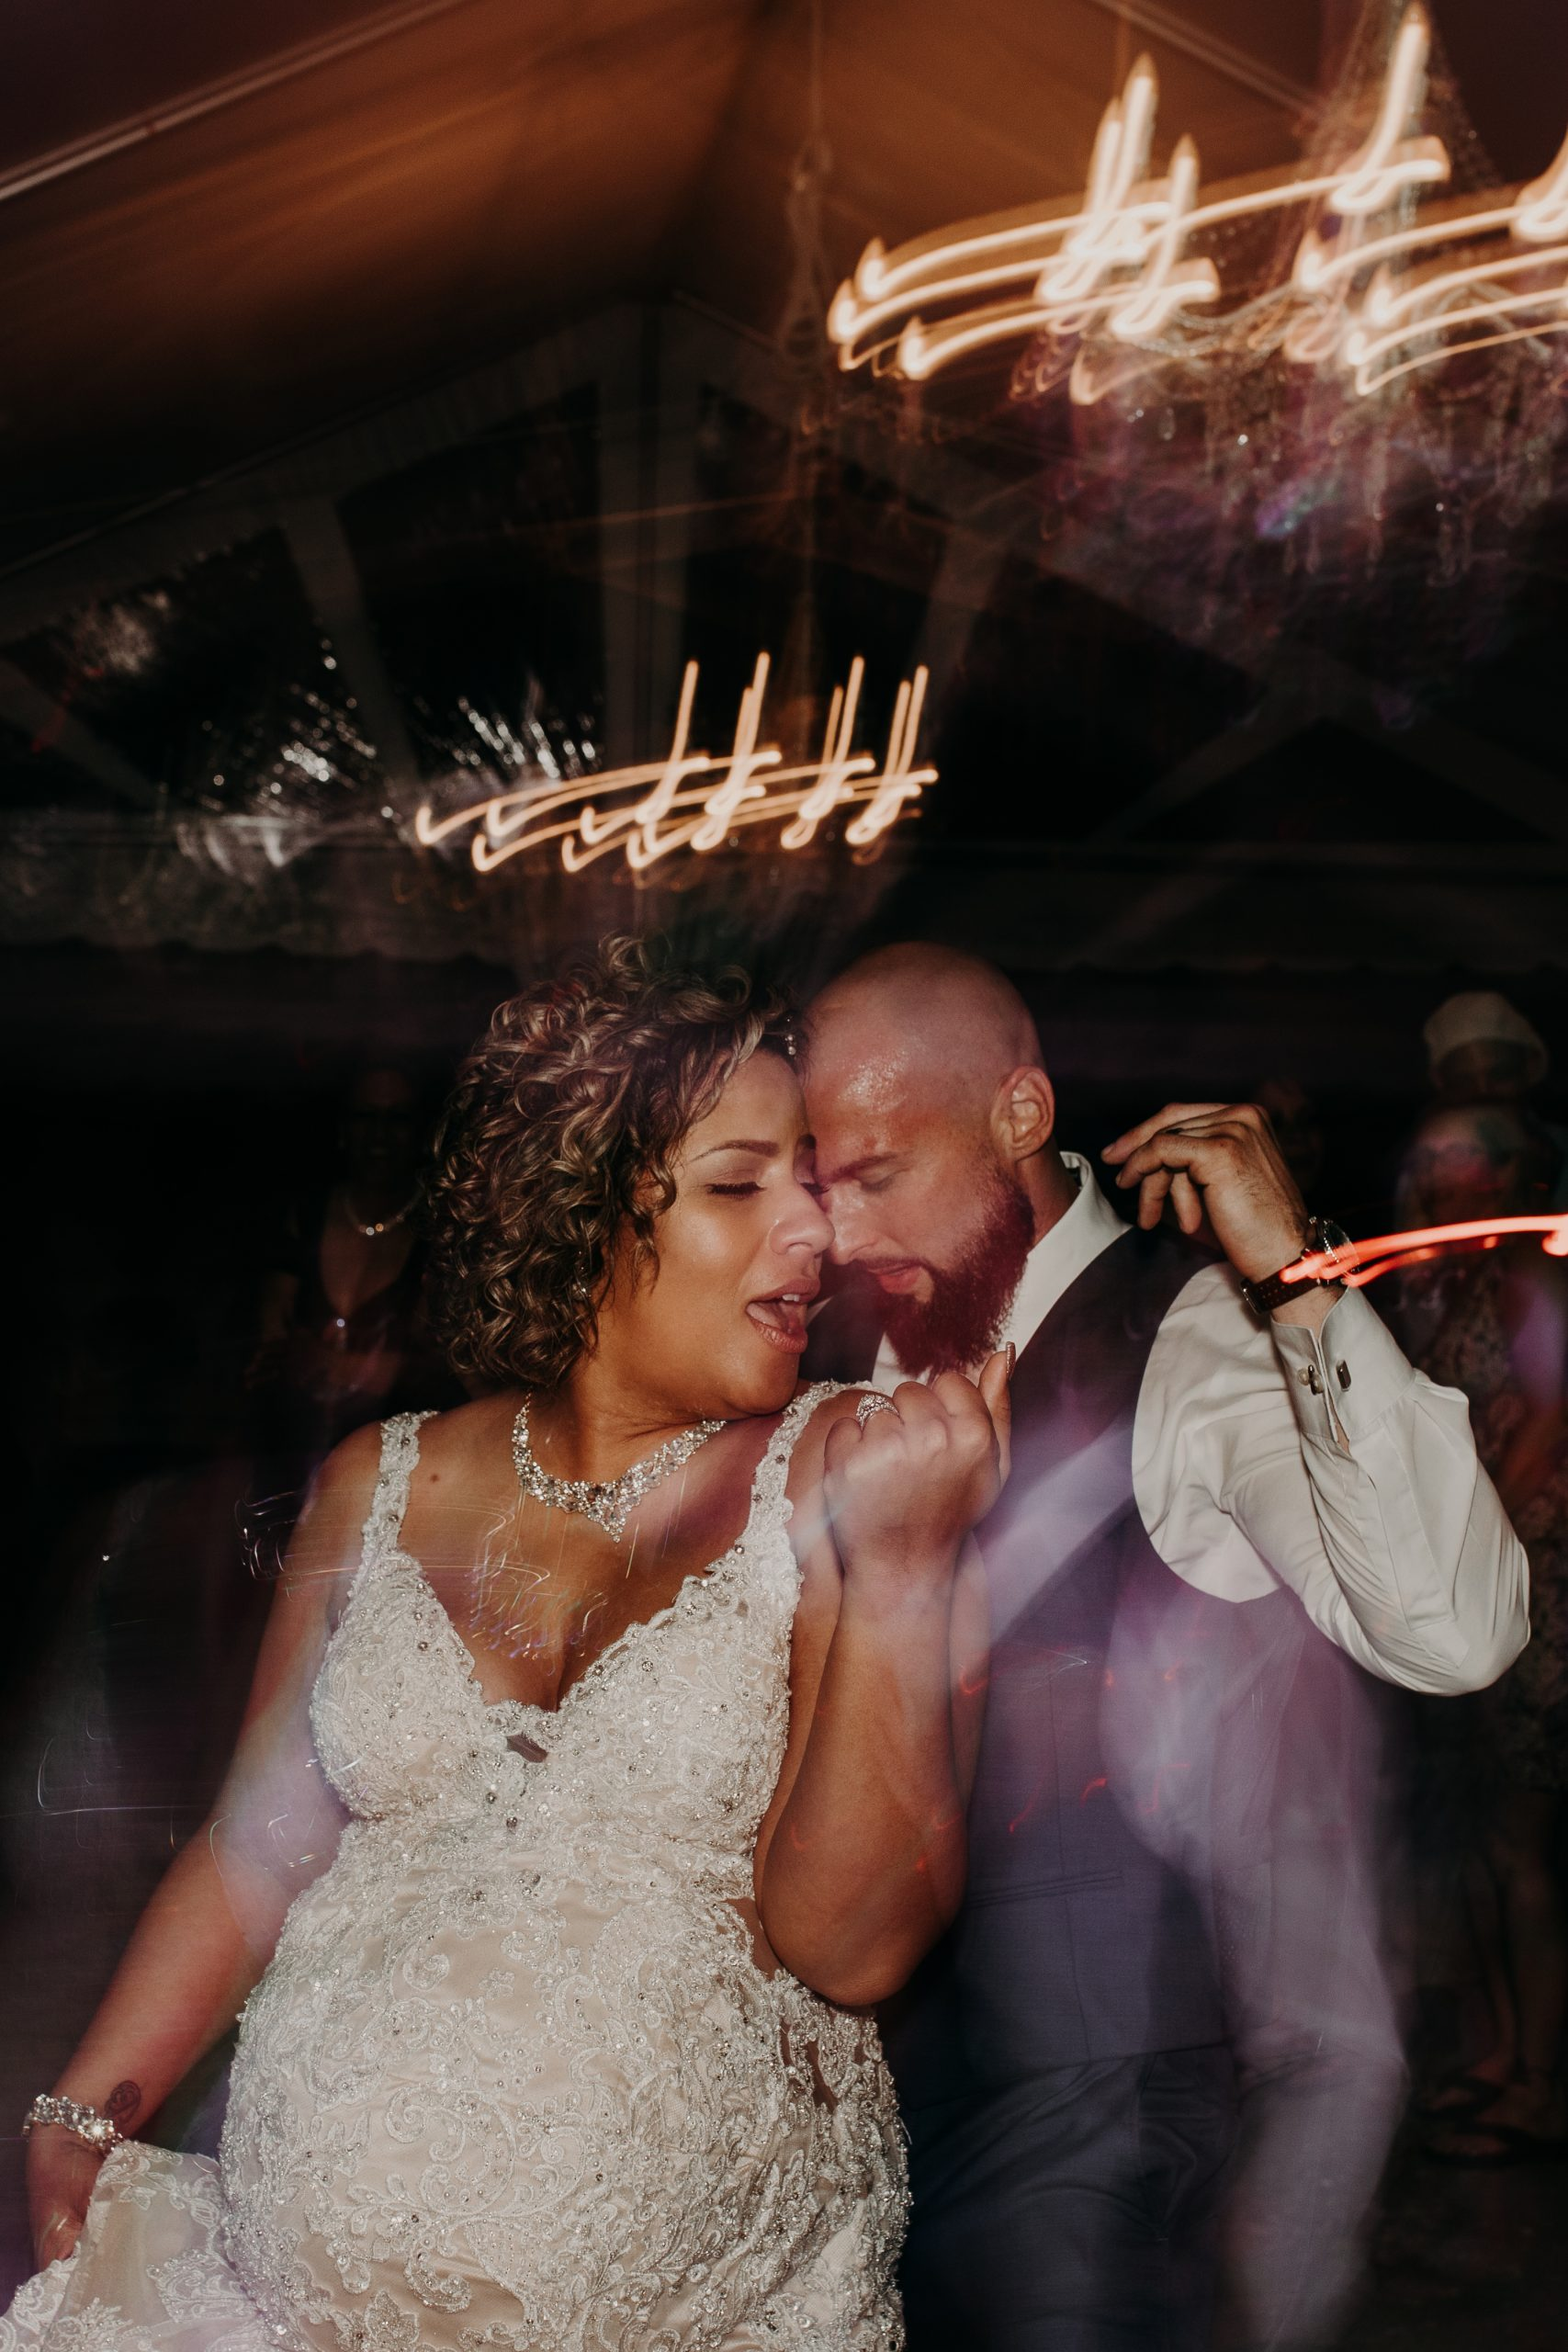 getting down and dirty on the dance floor the newly weds throw down. Christine and Richard wed on the Chestnut Hill Villa grounds on May of 2019. This organic ethereal styled wedding was captured by Garnet Dahlia Photography and featured on Dream Weddings.